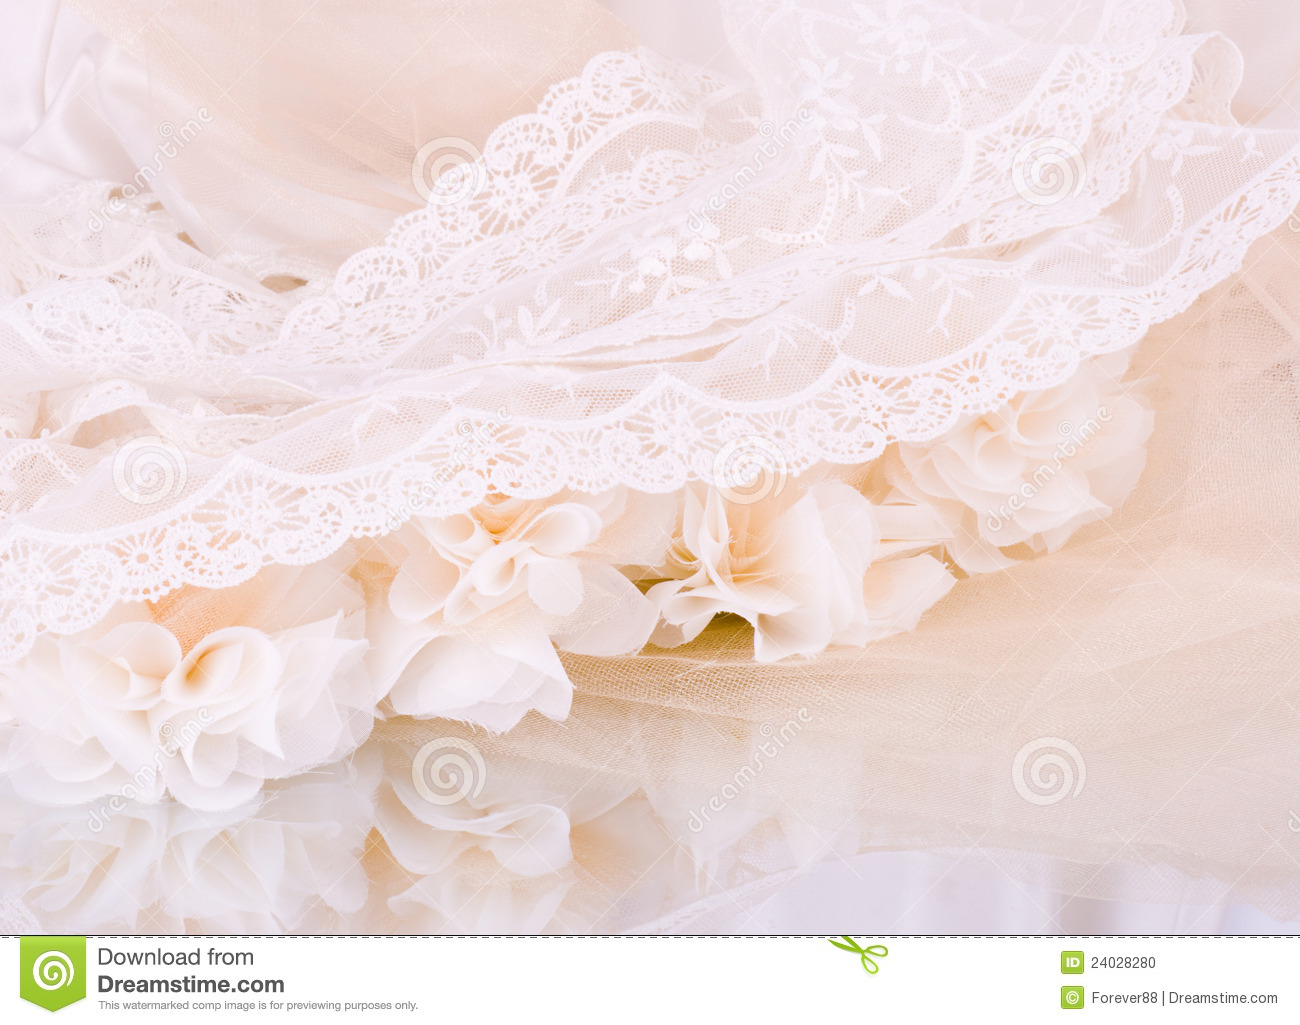 Vintage lace with flowers